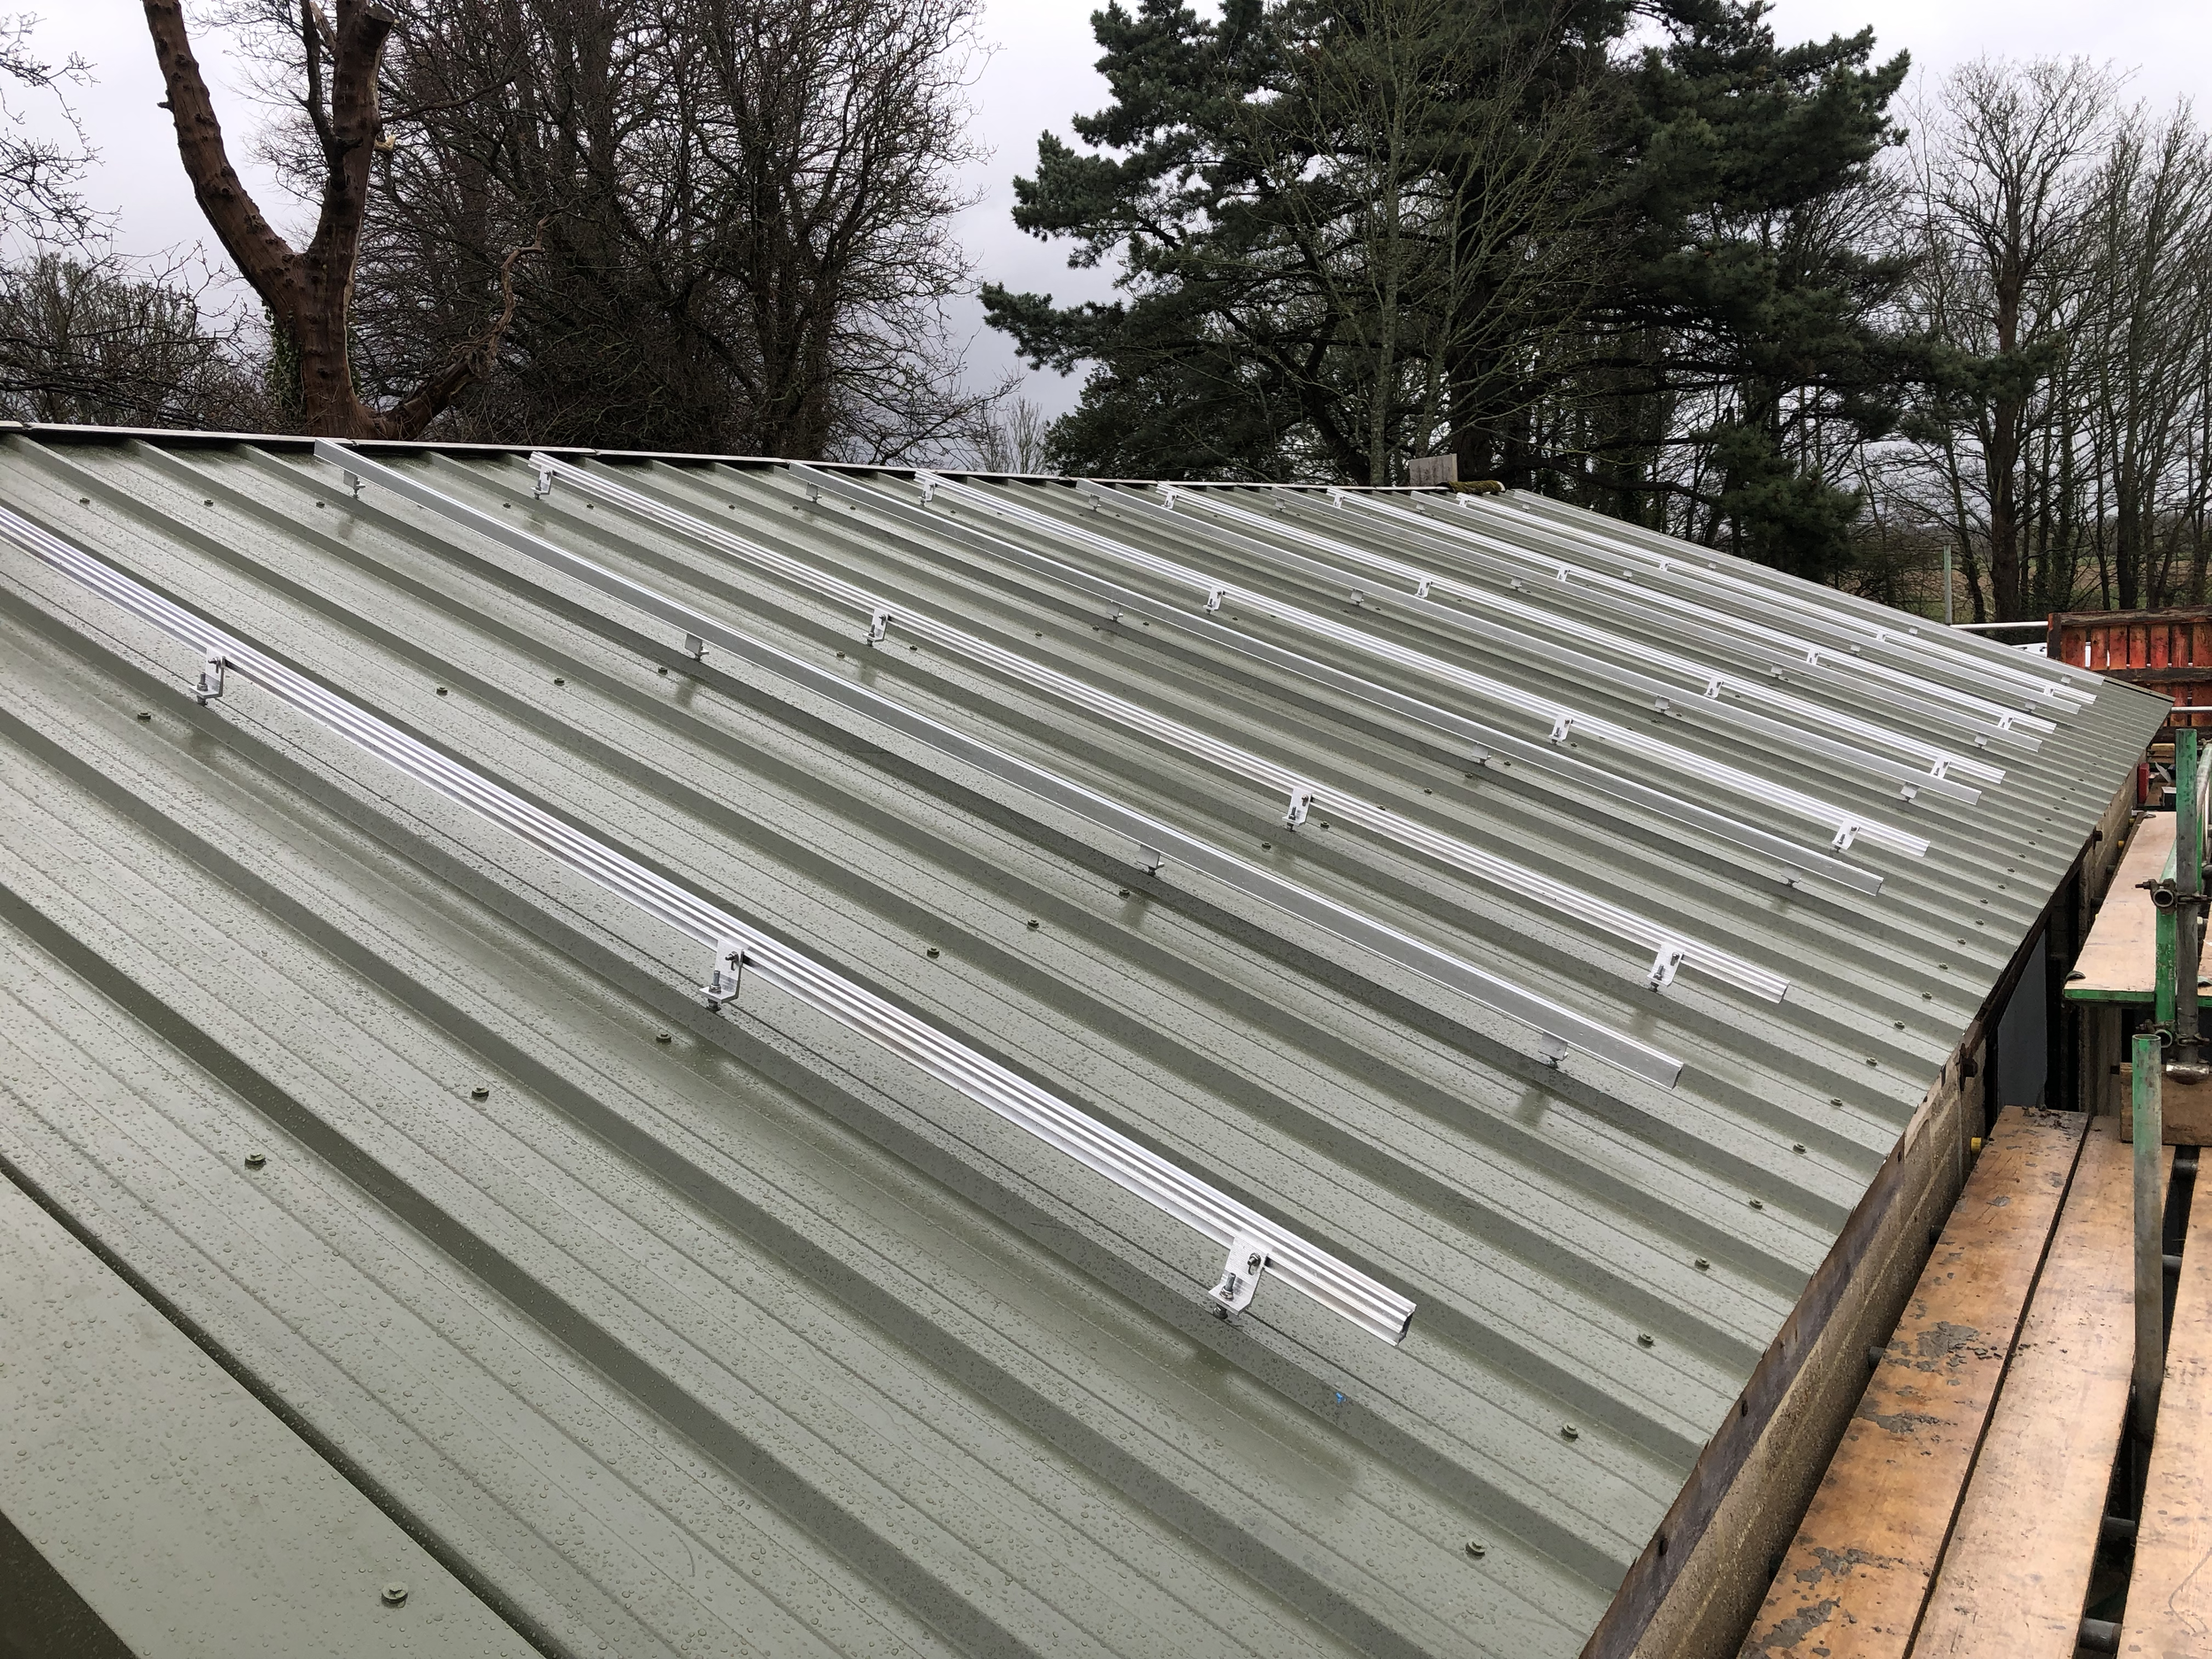 Installing the rails on a very wet and slippery roof. Harnesses and scaffolding fully used!!!!!